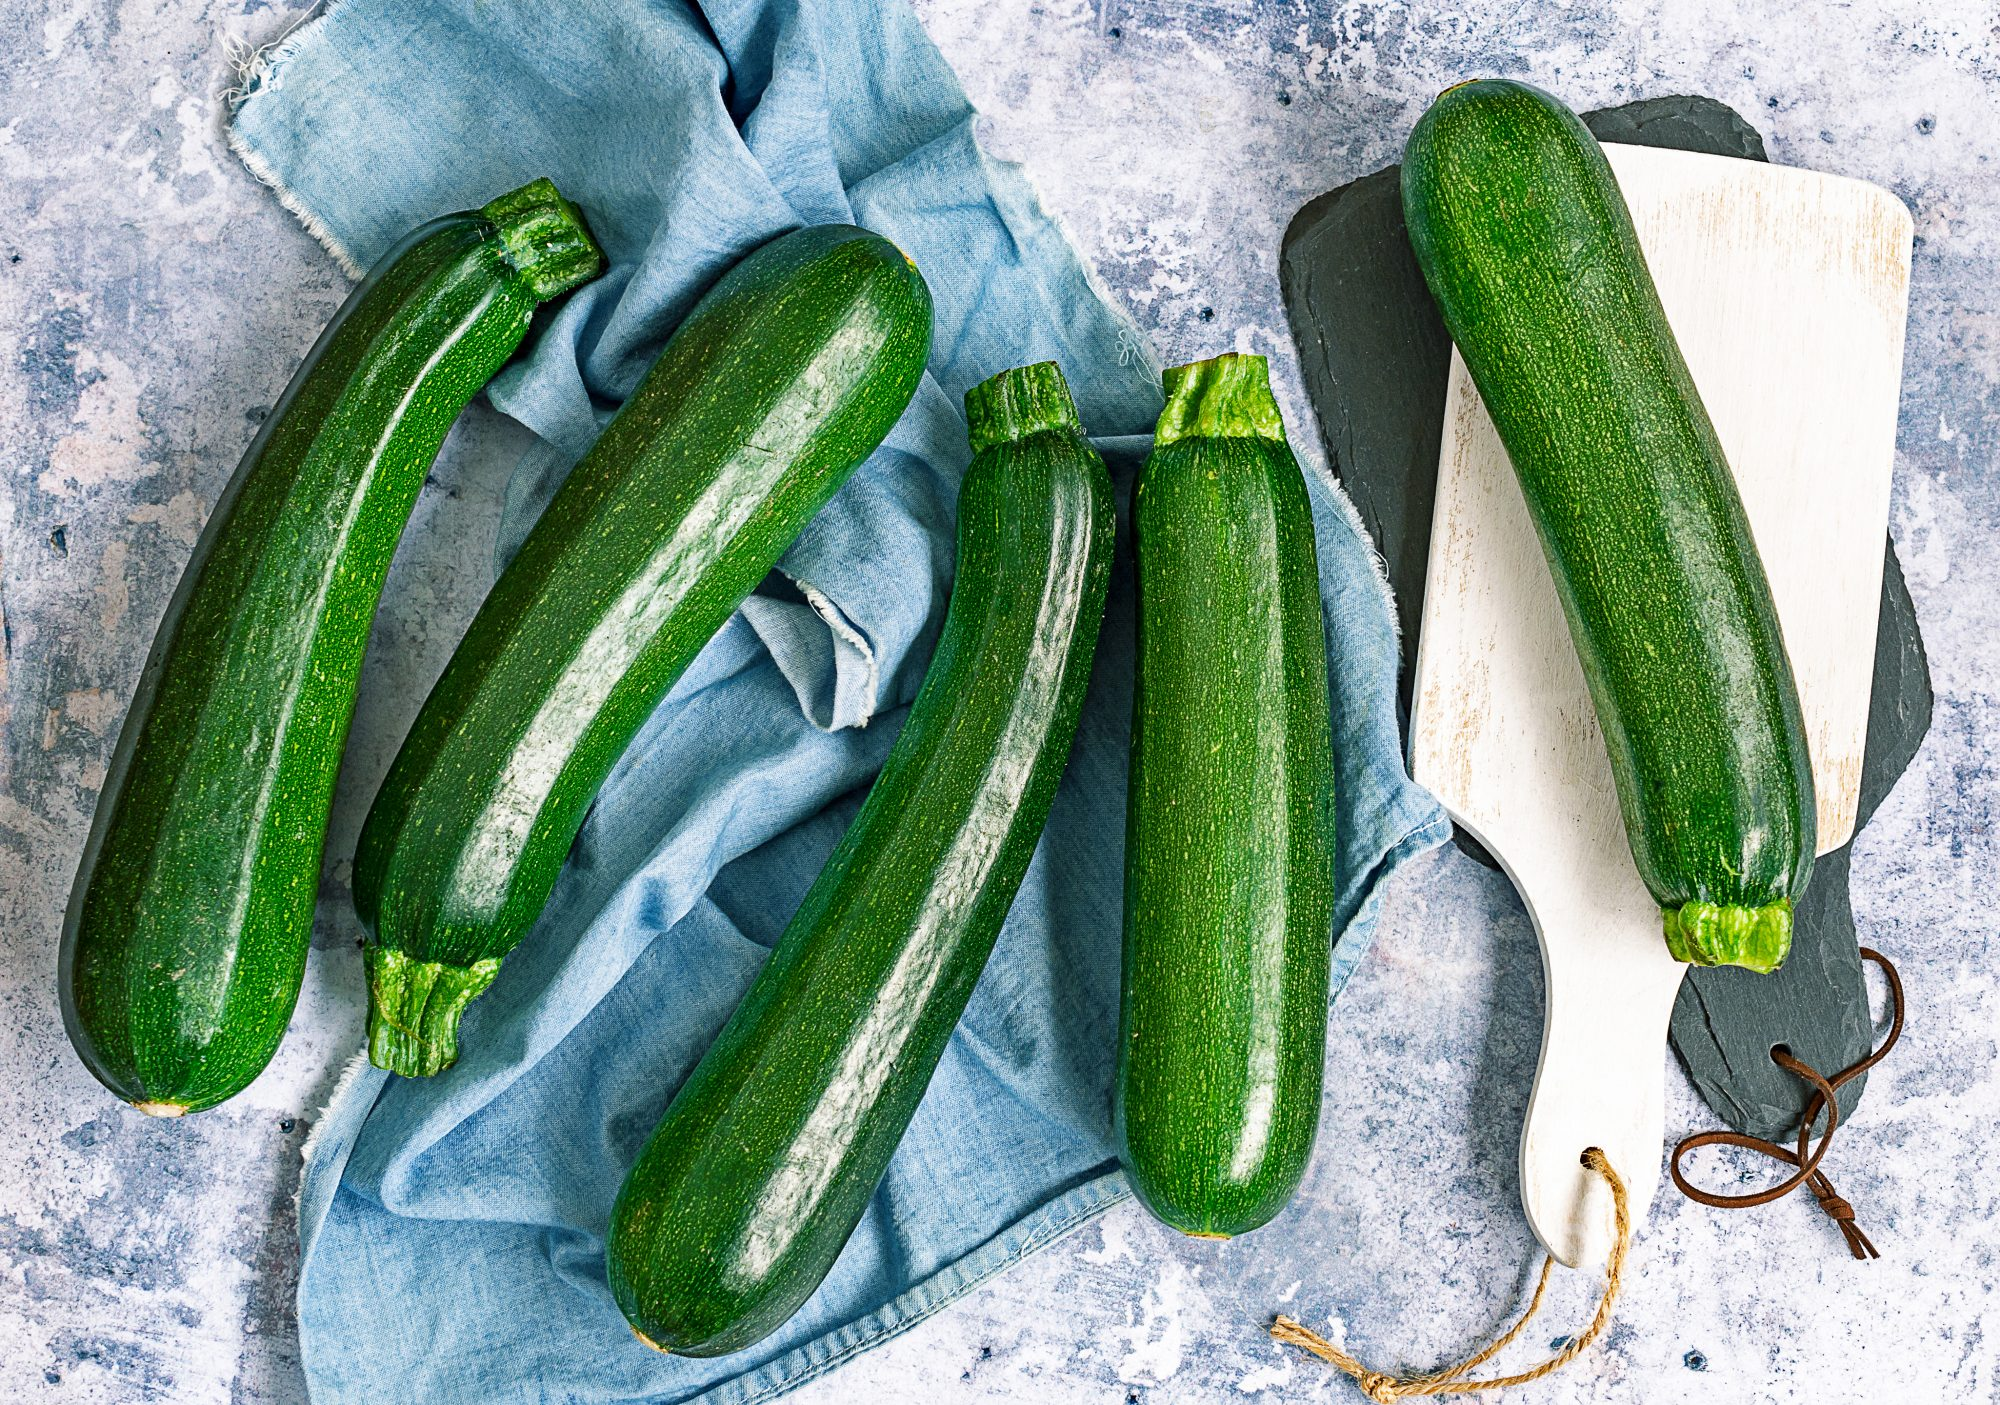 Whole zucchini Getty 6/22/20